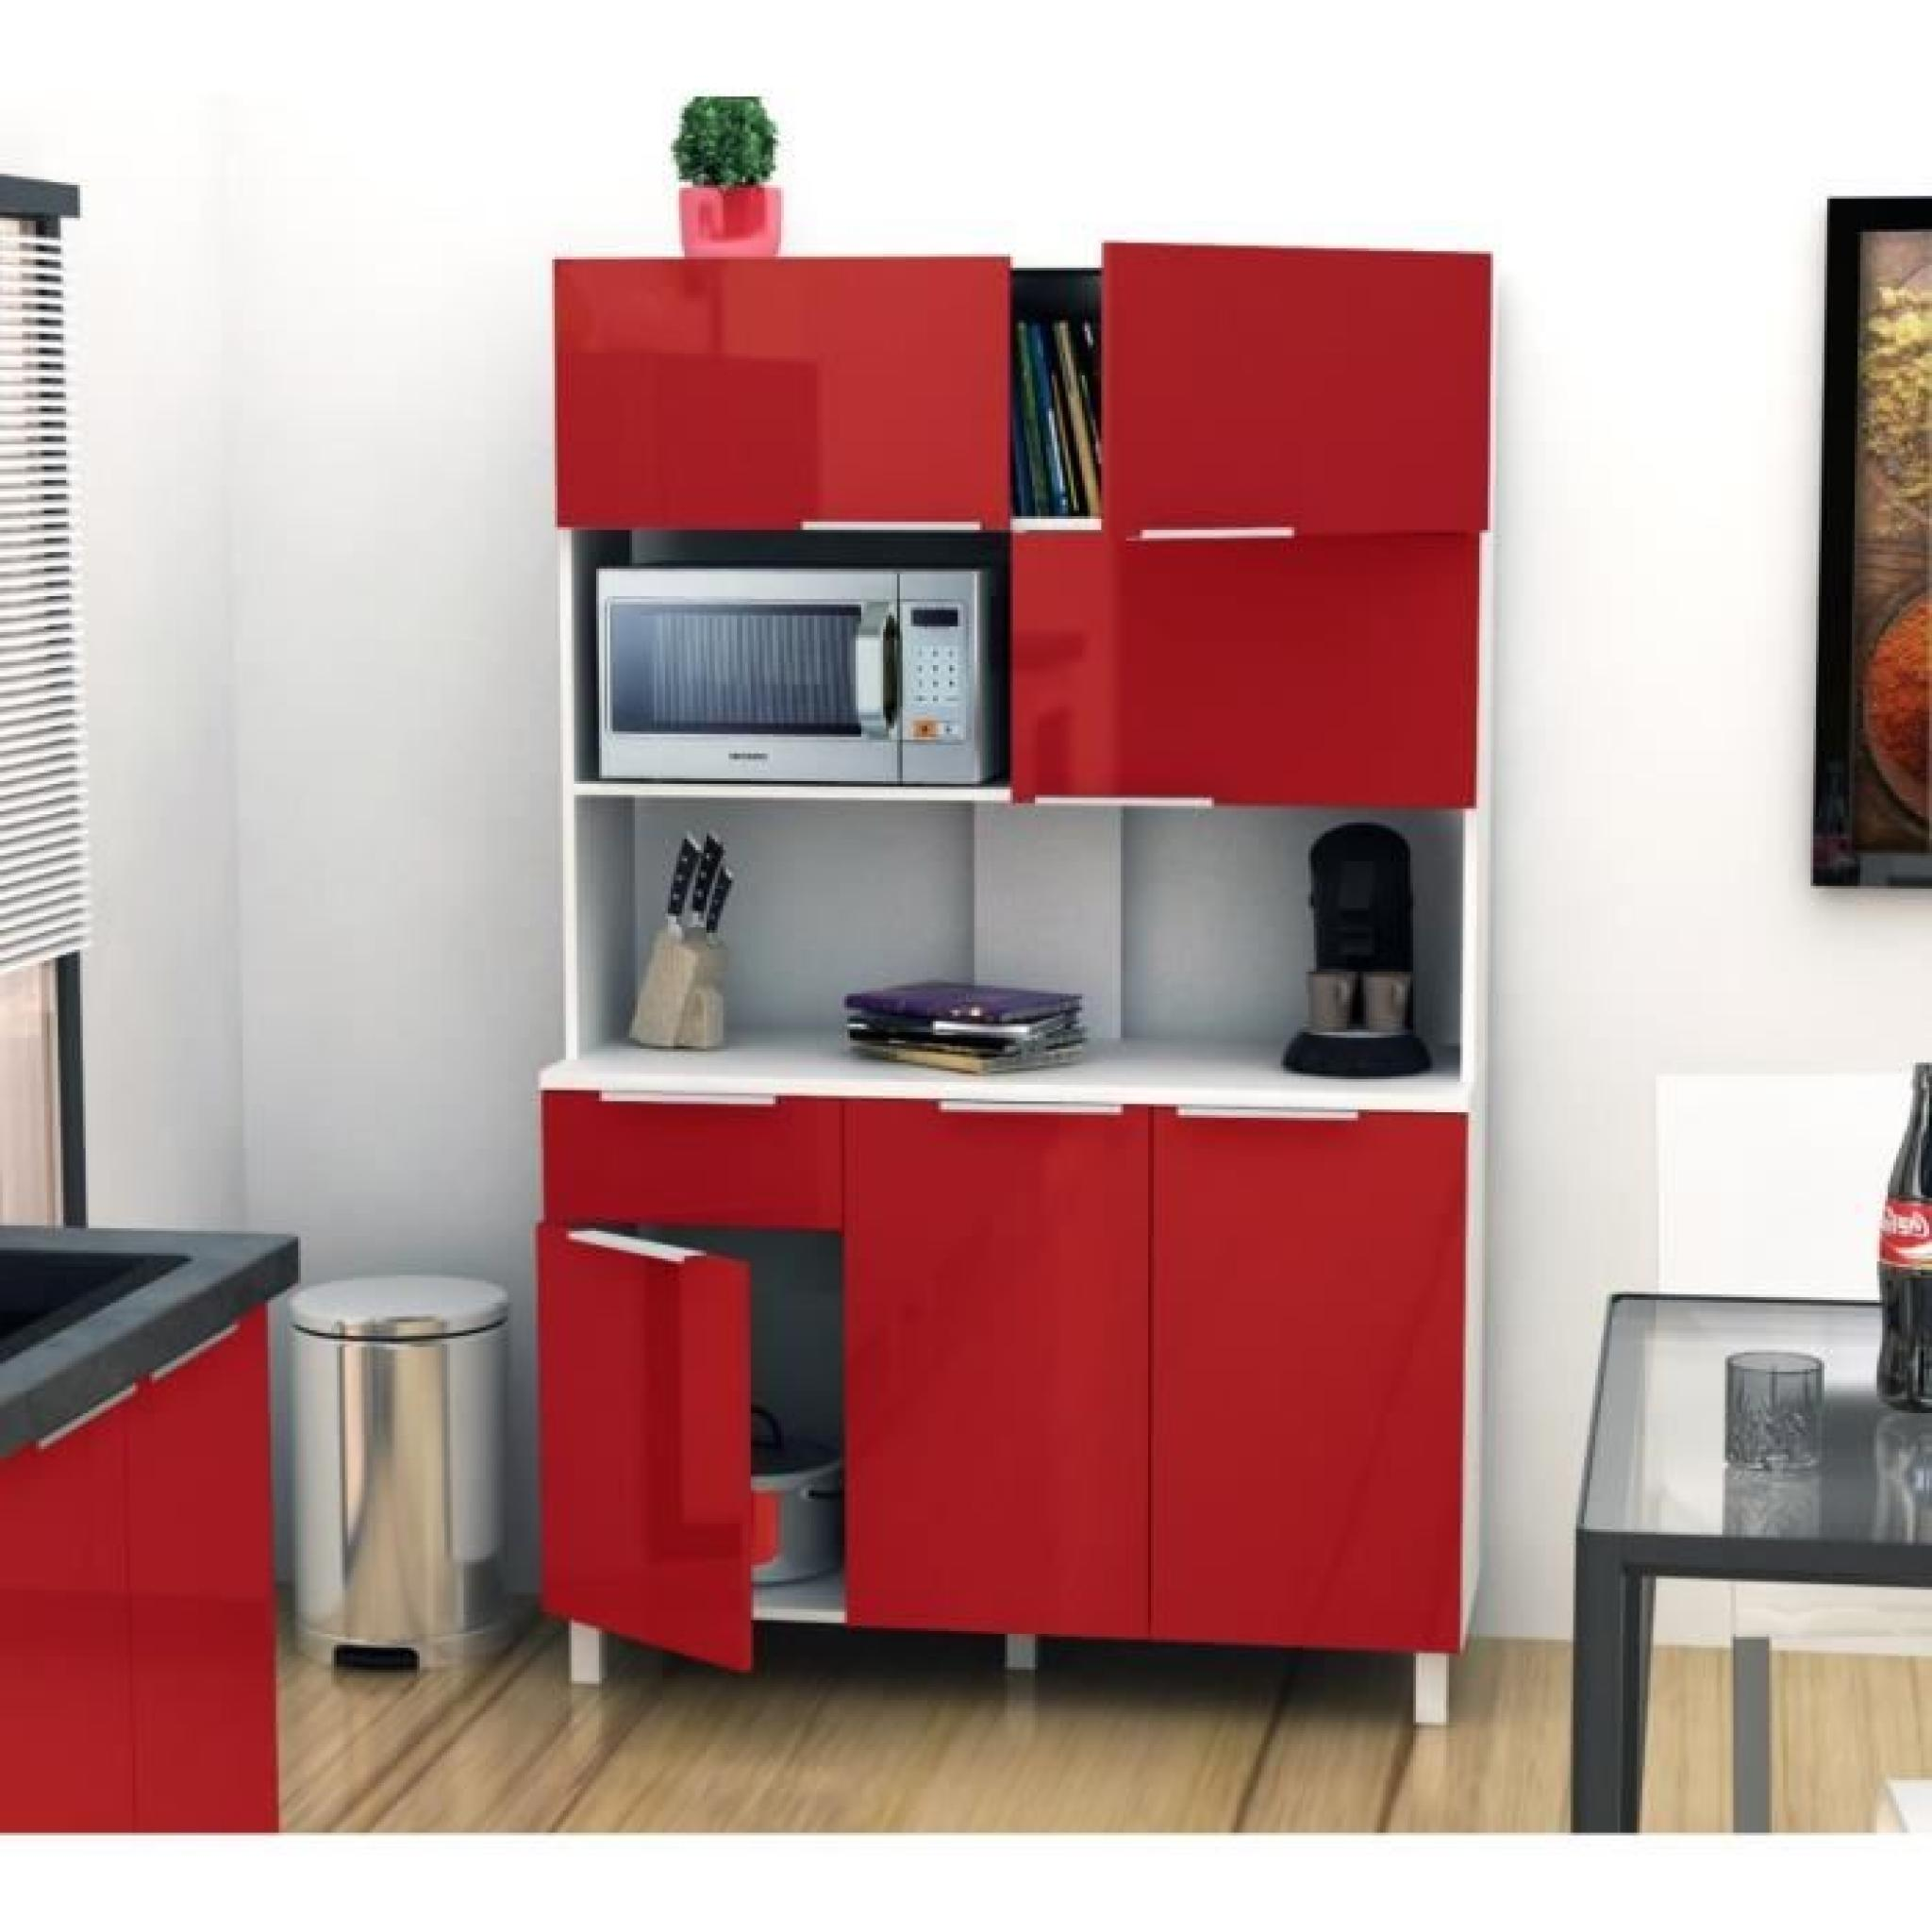 cuisine rouge moins cher avec des id es. Black Bedroom Furniture Sets. Home Design Ideas